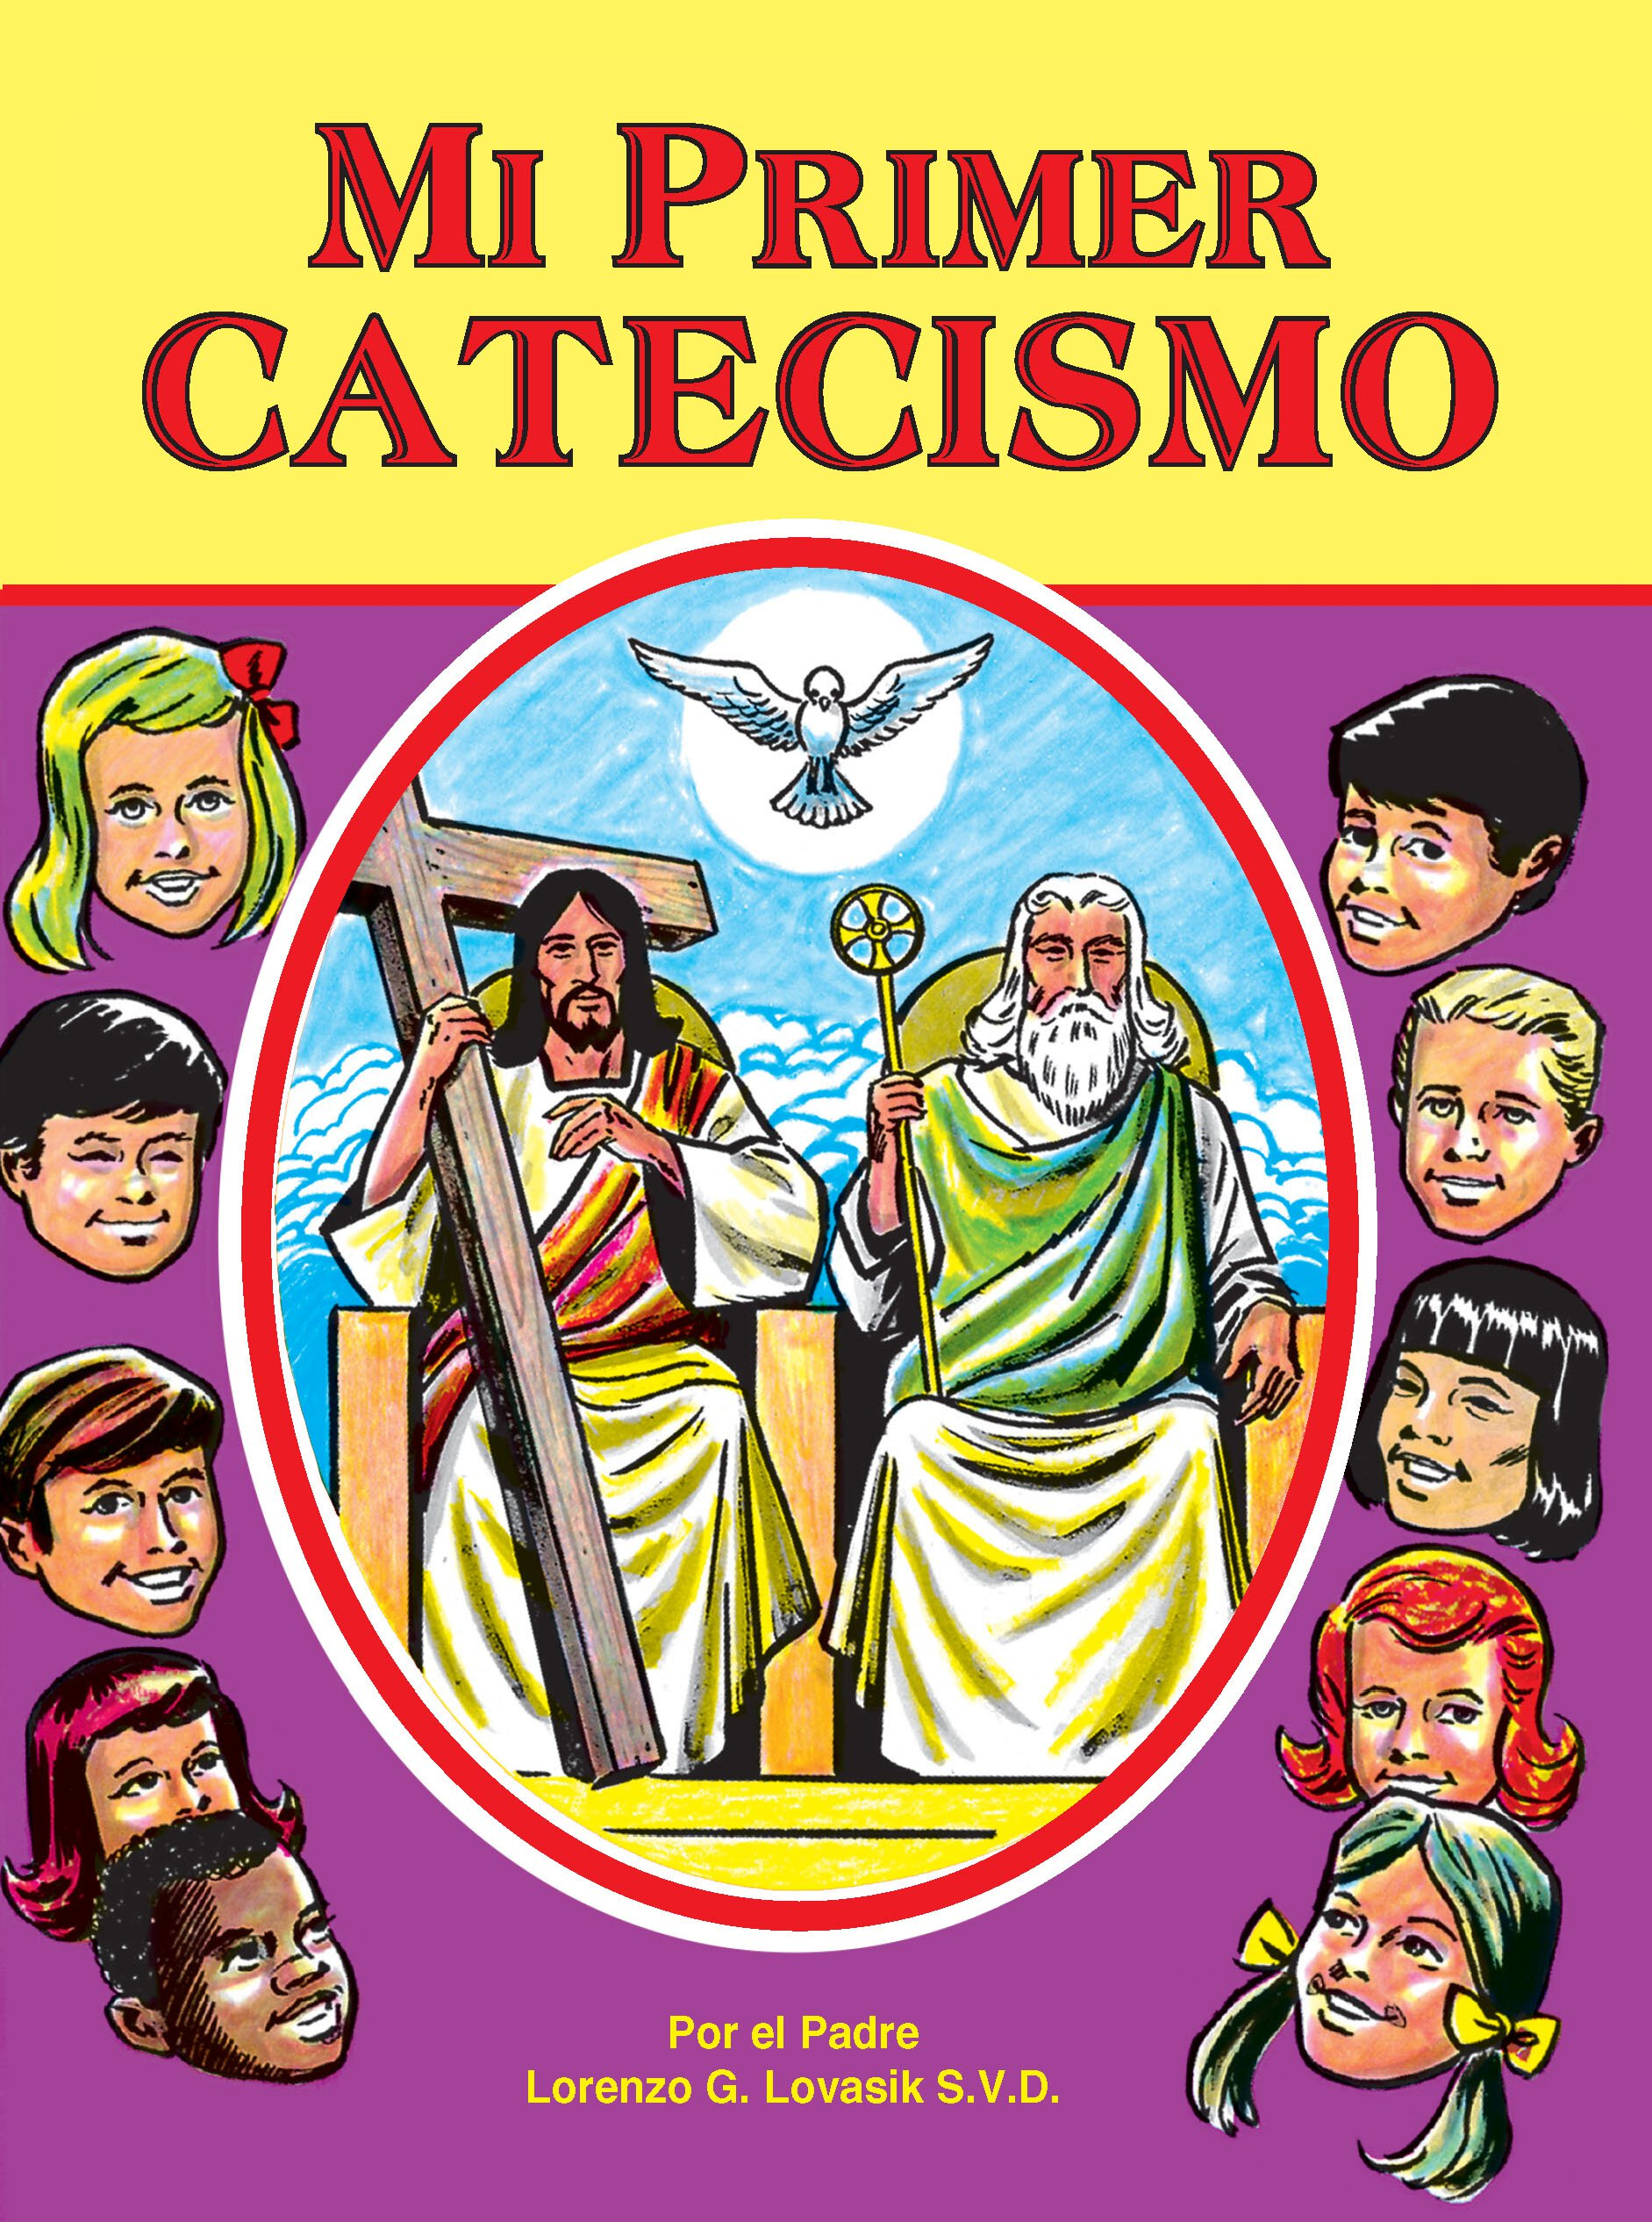 St. Joseph Picture Book - Mi Primer Catecismo (My First Catechism)